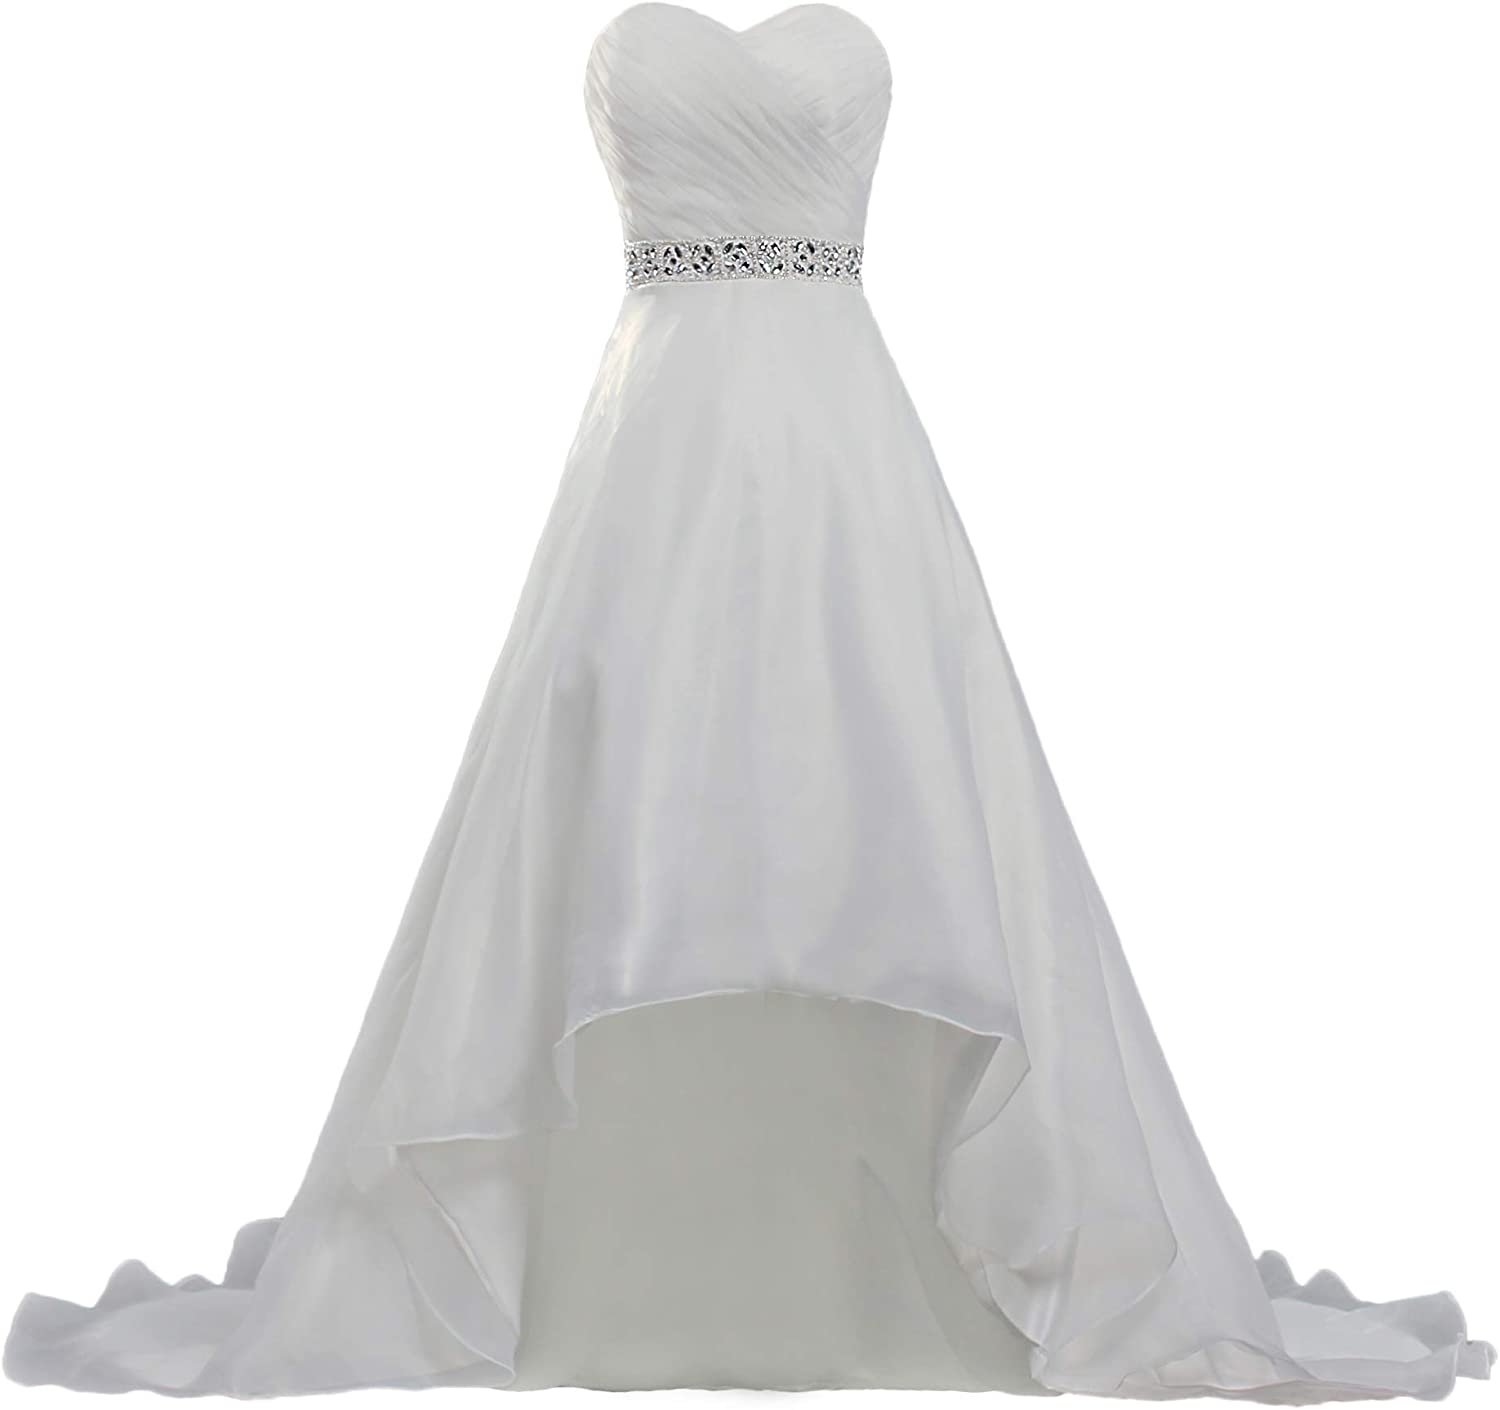 ANTS Women's Bead Short Front Long Back Bridal Wedding Dresses Gown